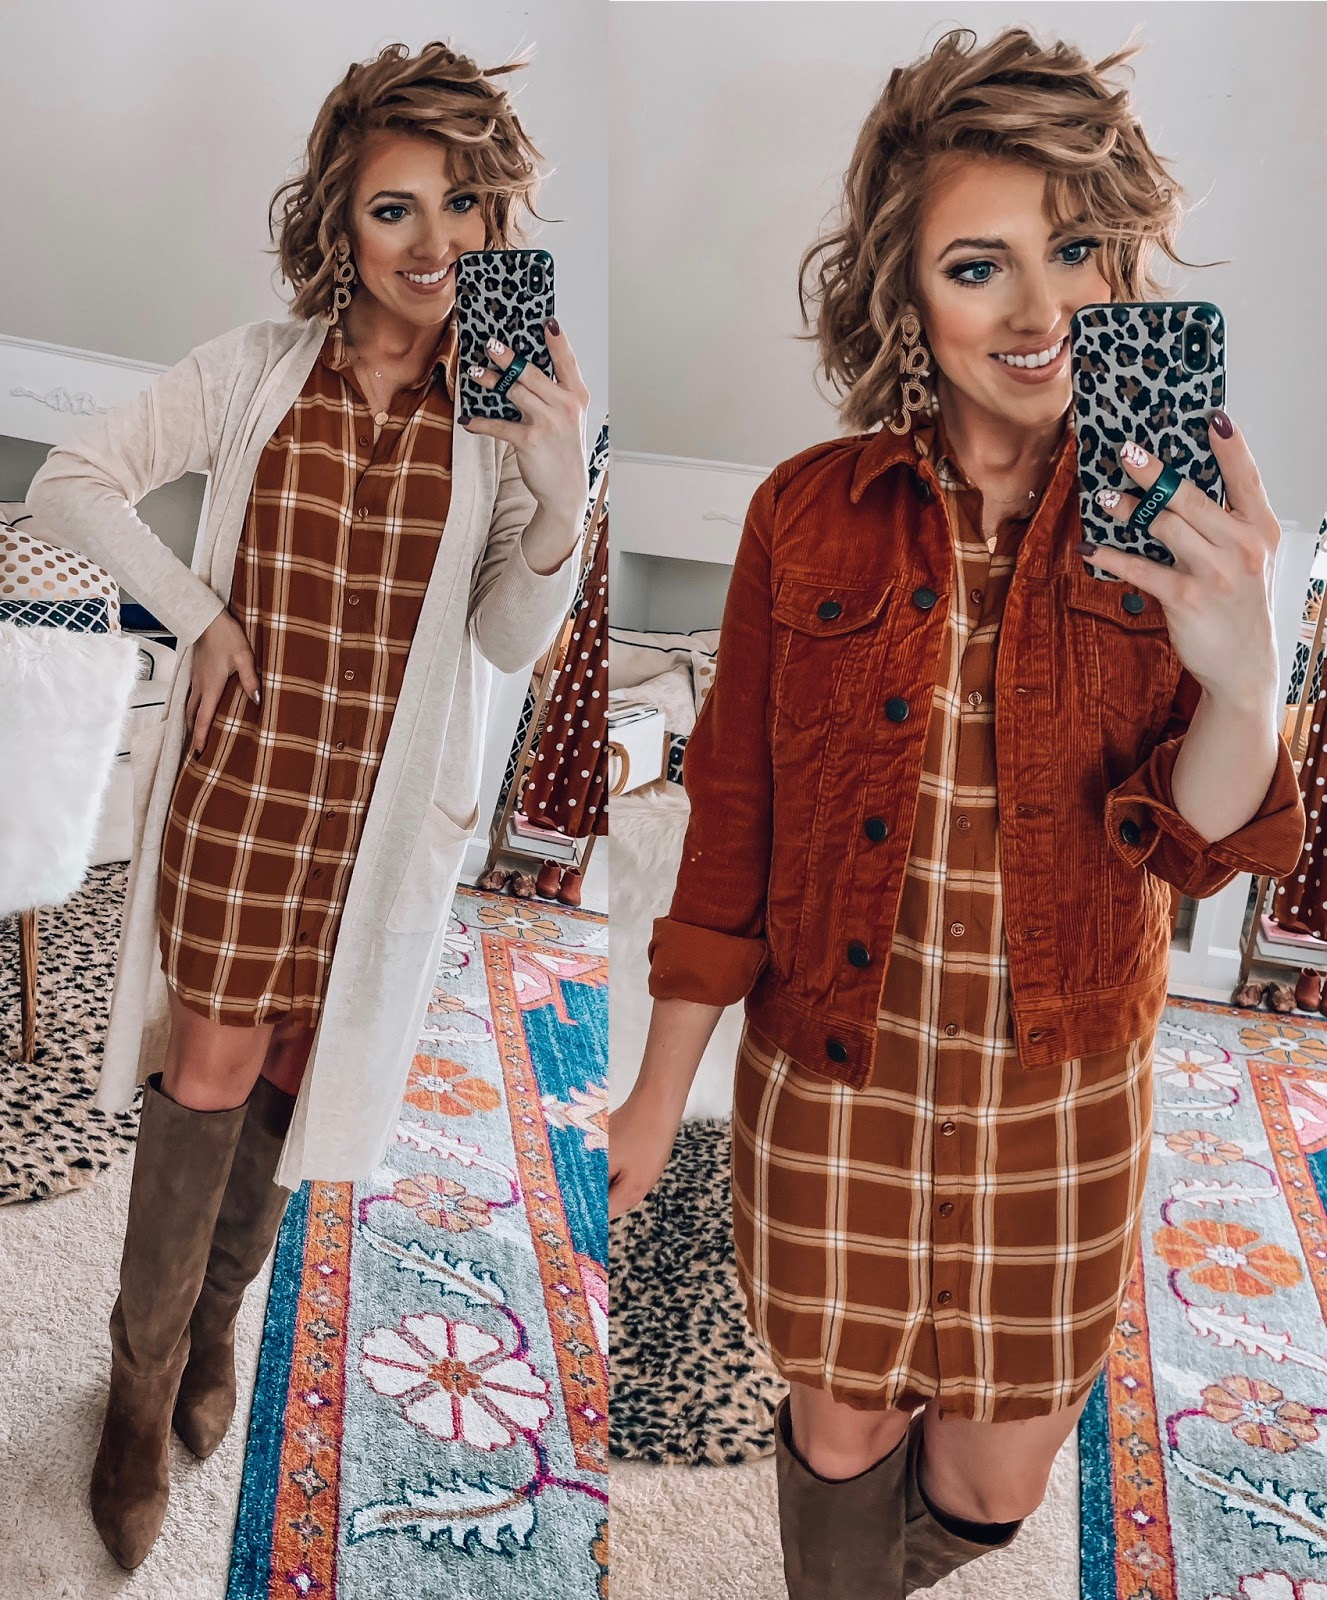 Old Navy Plaid Button Up Shirt Dress + Target Style Cardigan & Old Navy Corduroy Jacket  - Somethig Delightful Blog #affordablefashion